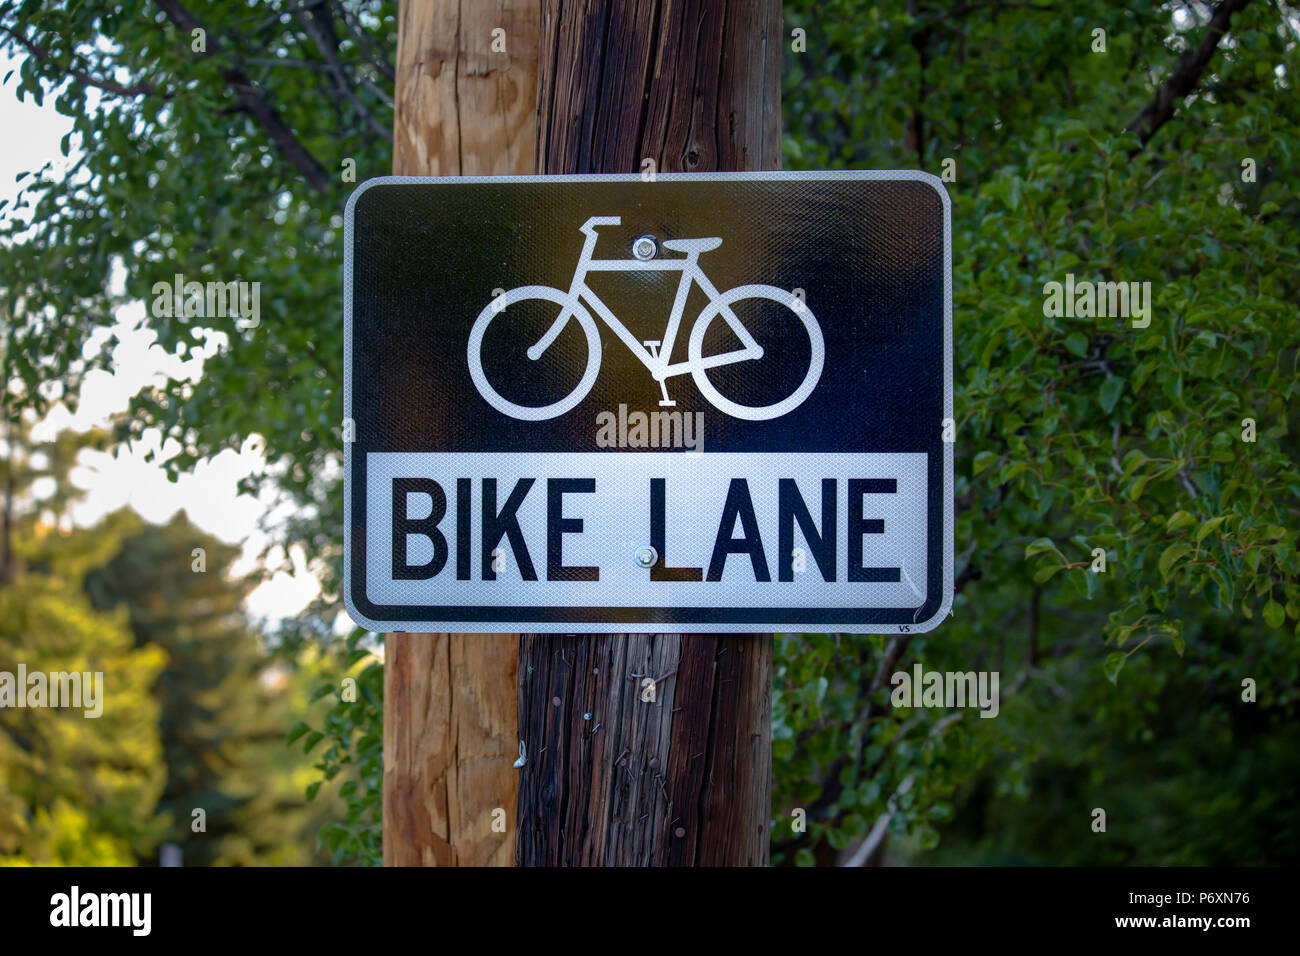 Bike lane sign in downtown - Stock Image